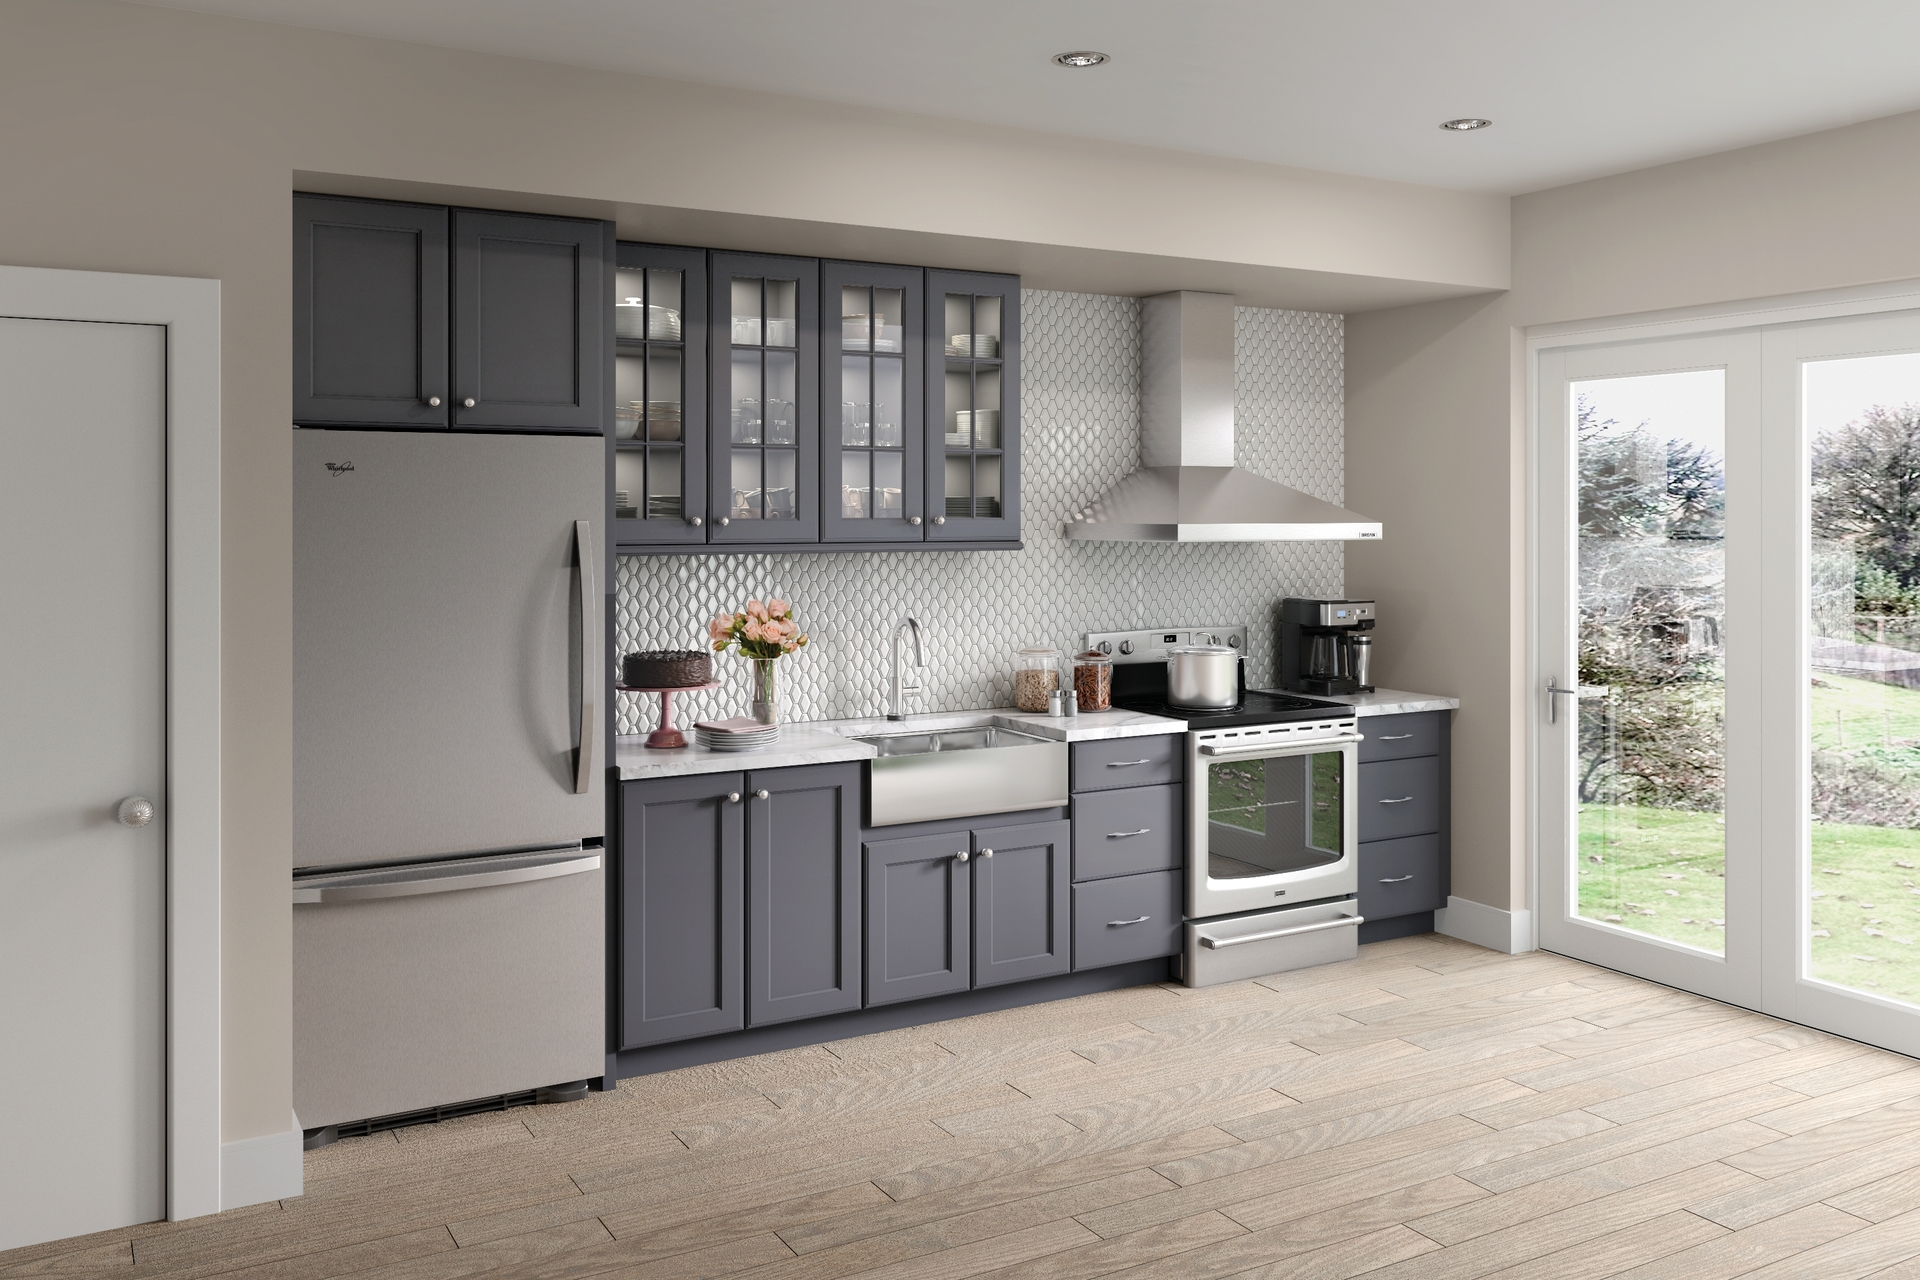 Cardell Kitchen Cabinets - Rockeny Maple in Lagoon